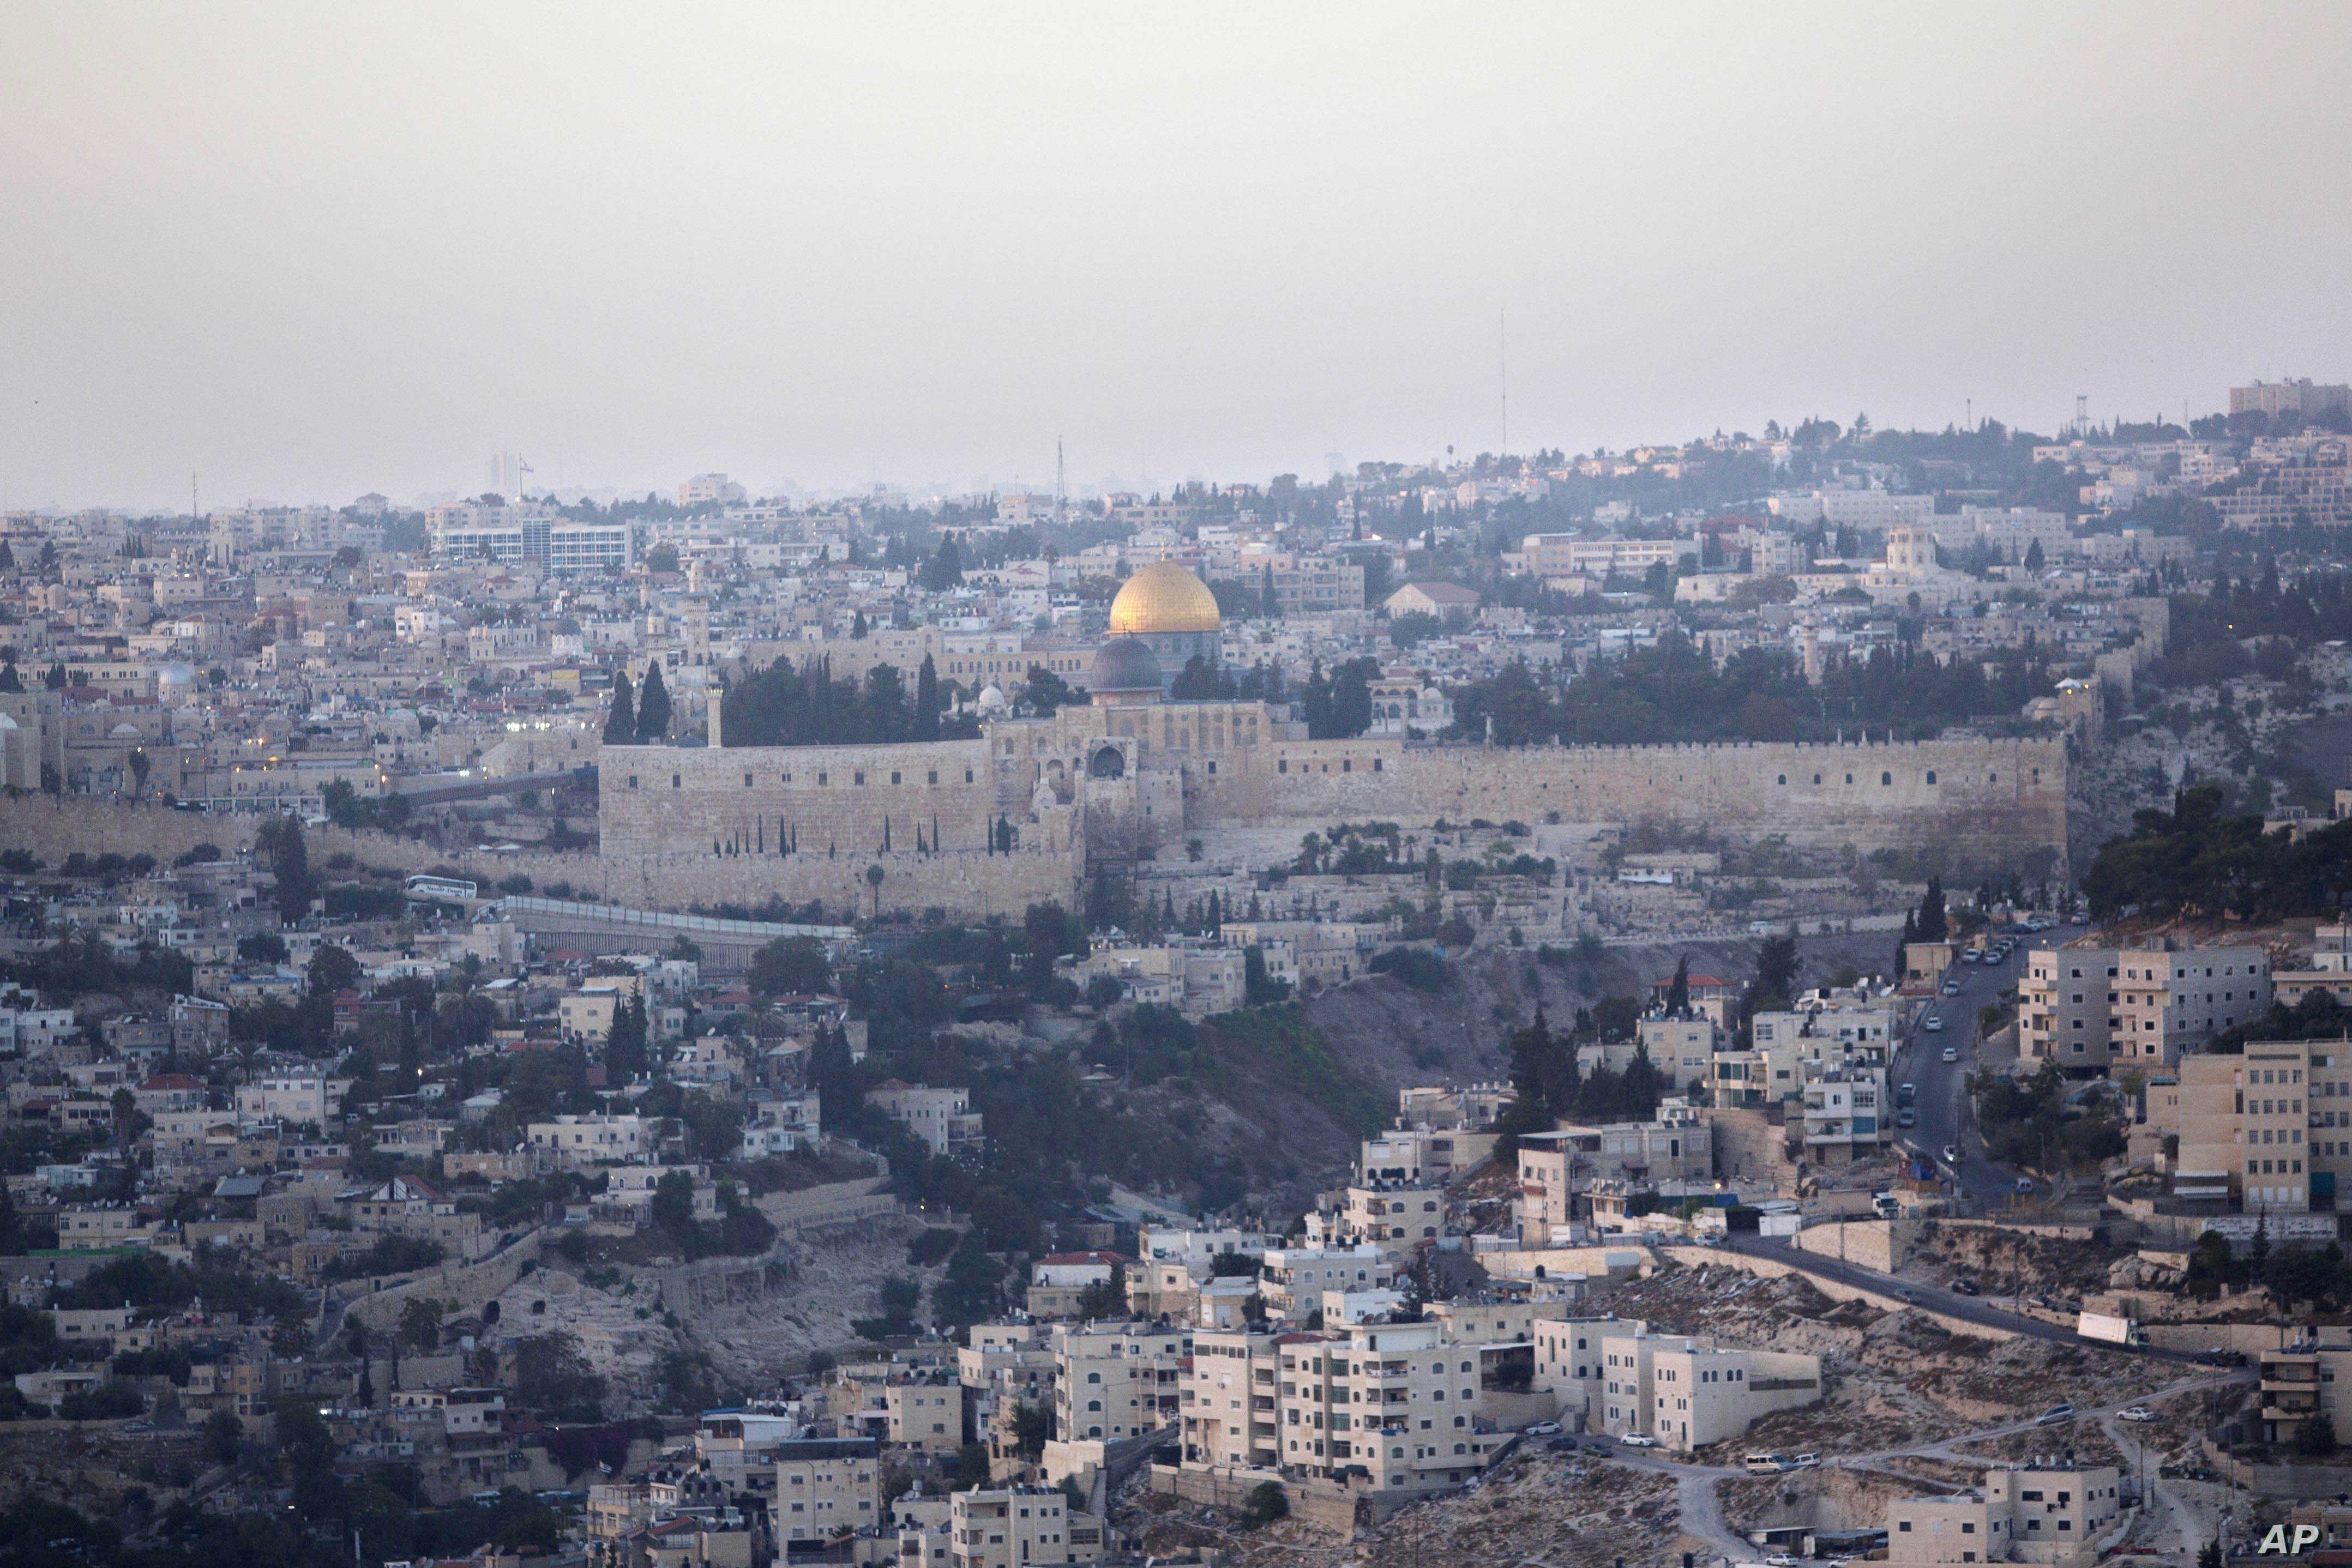 FILE - The Dome of the Rock Mosque in the Al-Aqsa Mosque compound is seen in Jerusalem's Old City, Oct. 14, 2015.